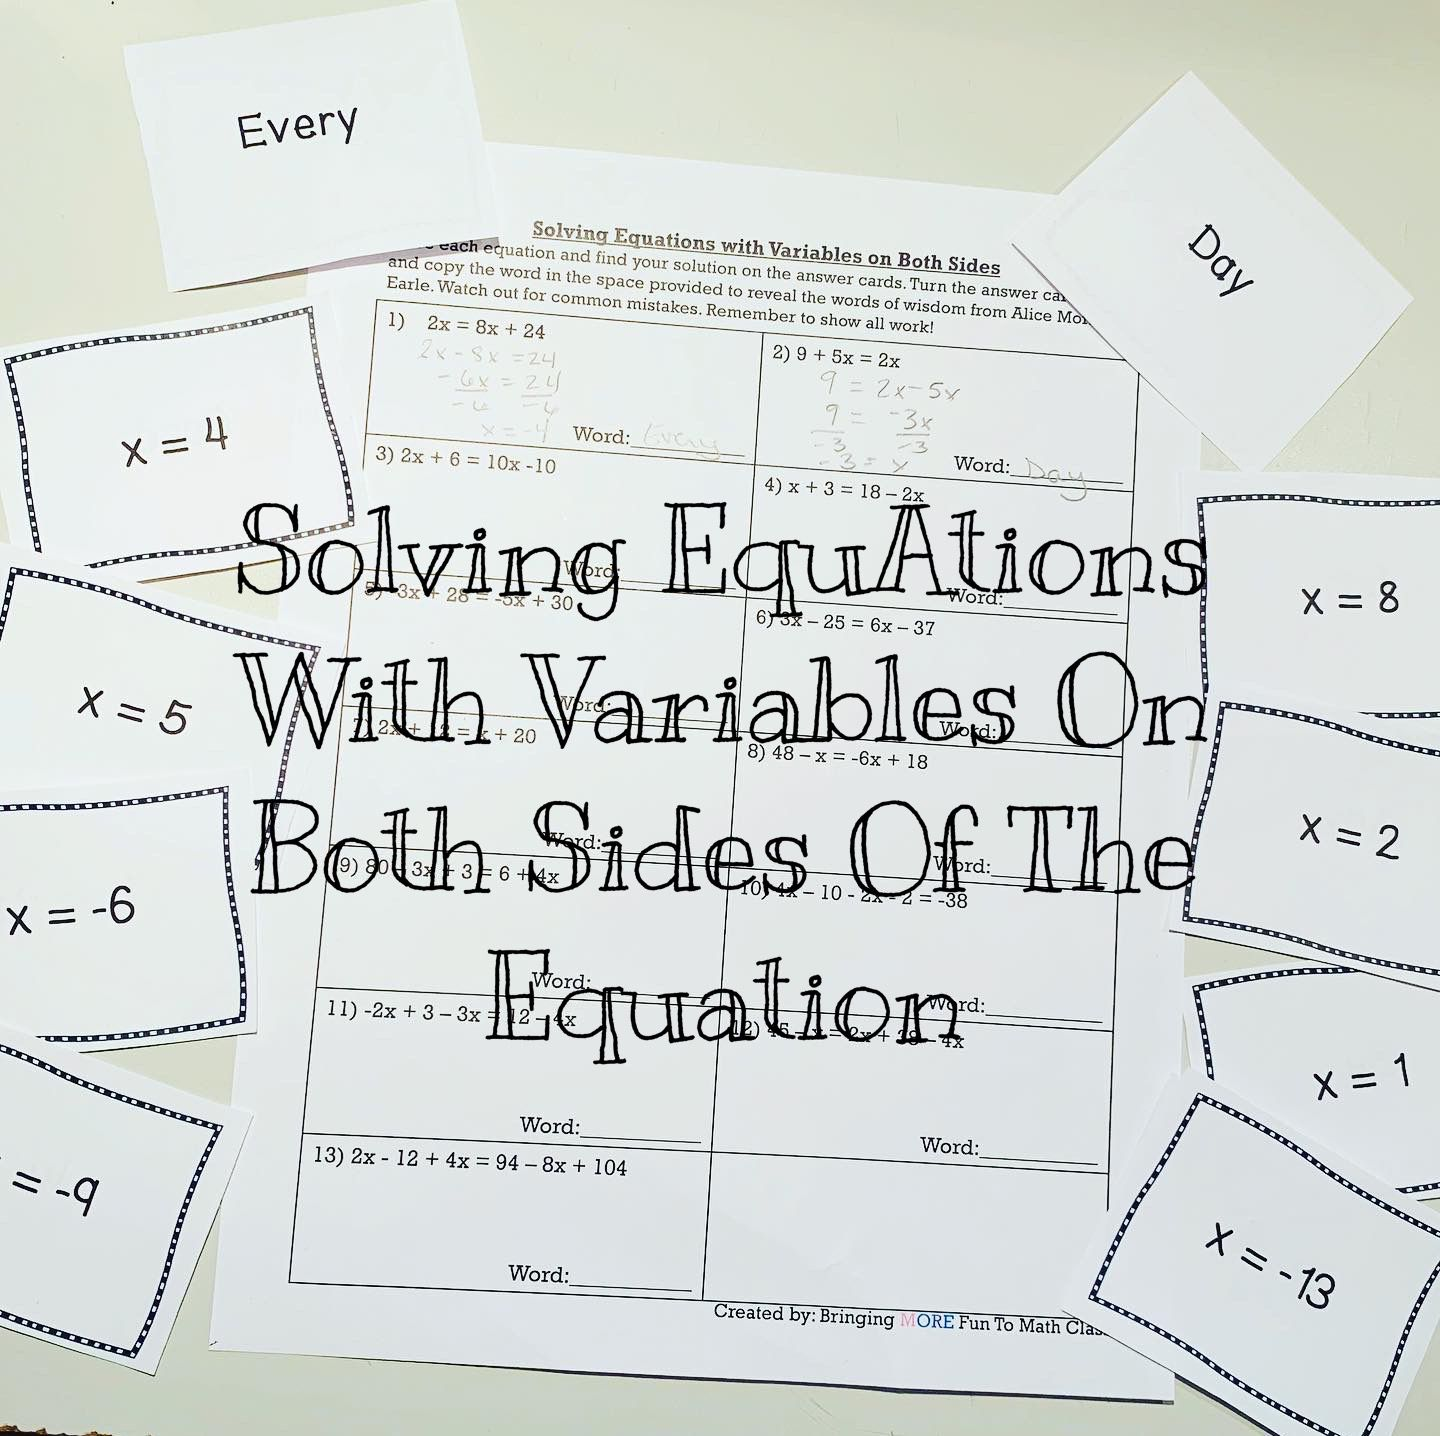 Solving Equations With Variables On Both Sides In